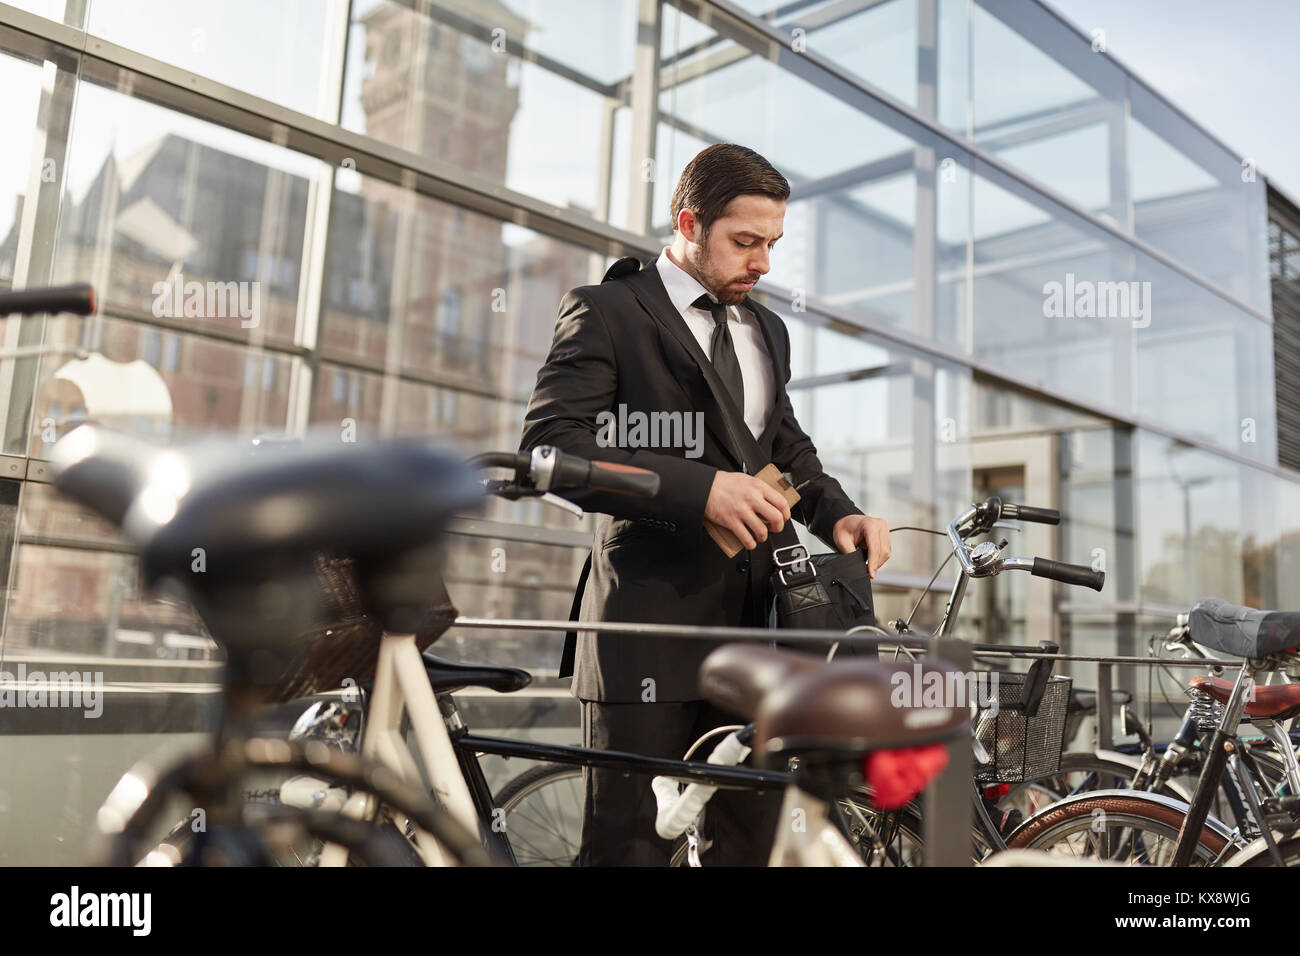 Businessman as a commuter is looking for the key for his bike - Stock Image